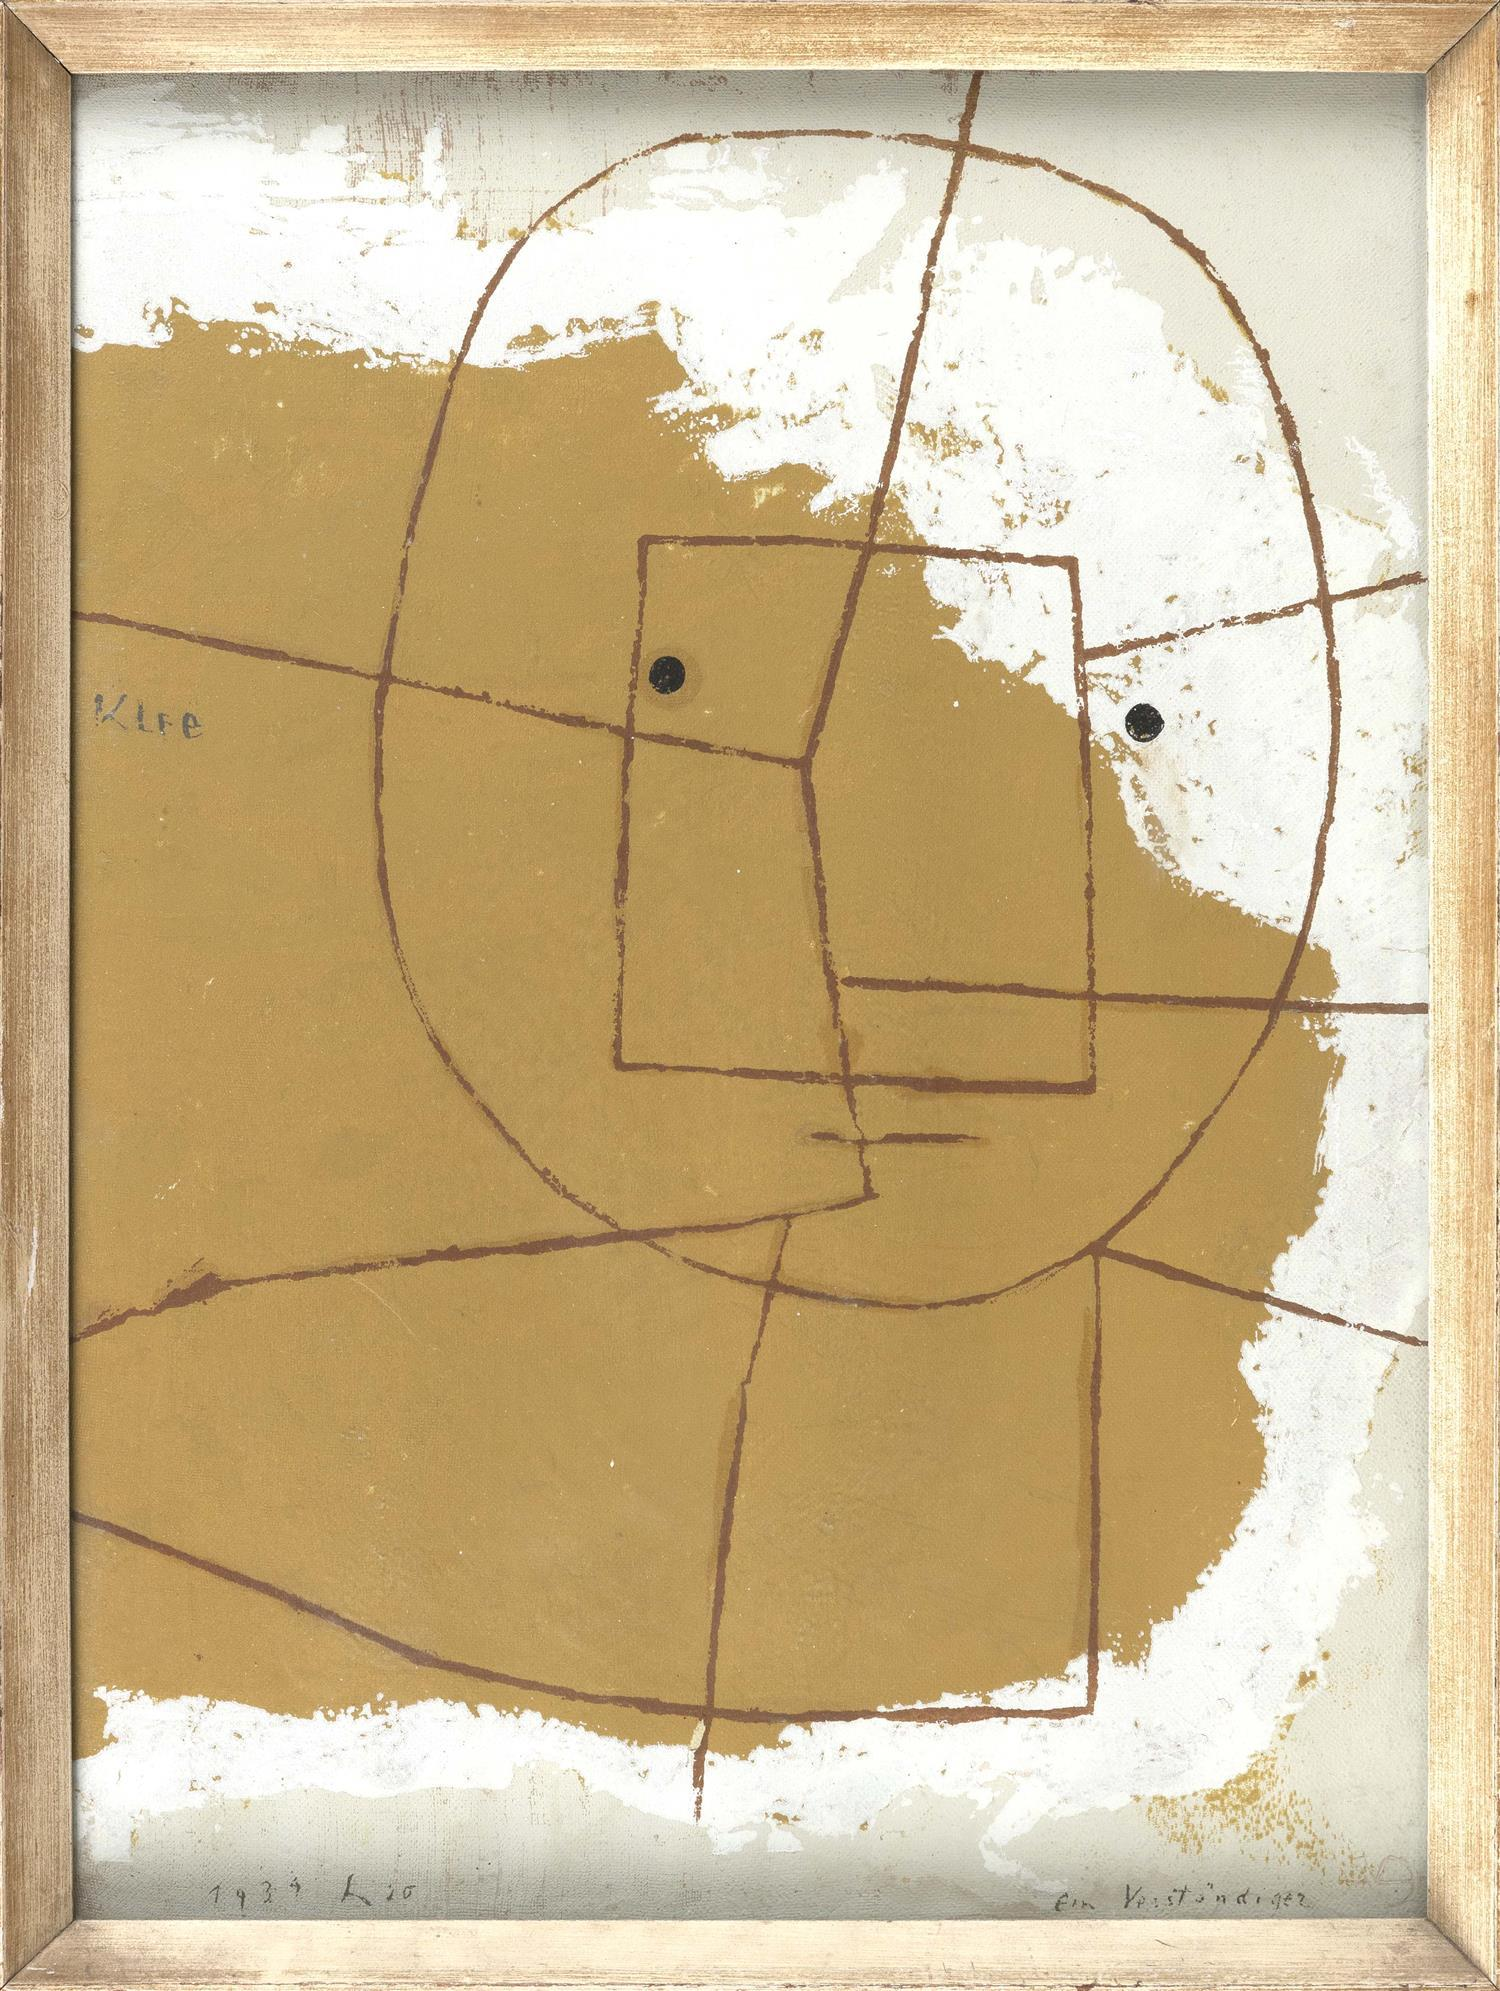 """PAUL KLEE SCREENPRINT """"One Who Understands"""". Dated 1934 in image. 21"""" x 15"""". Framed 22"""" x 16.5""""."""